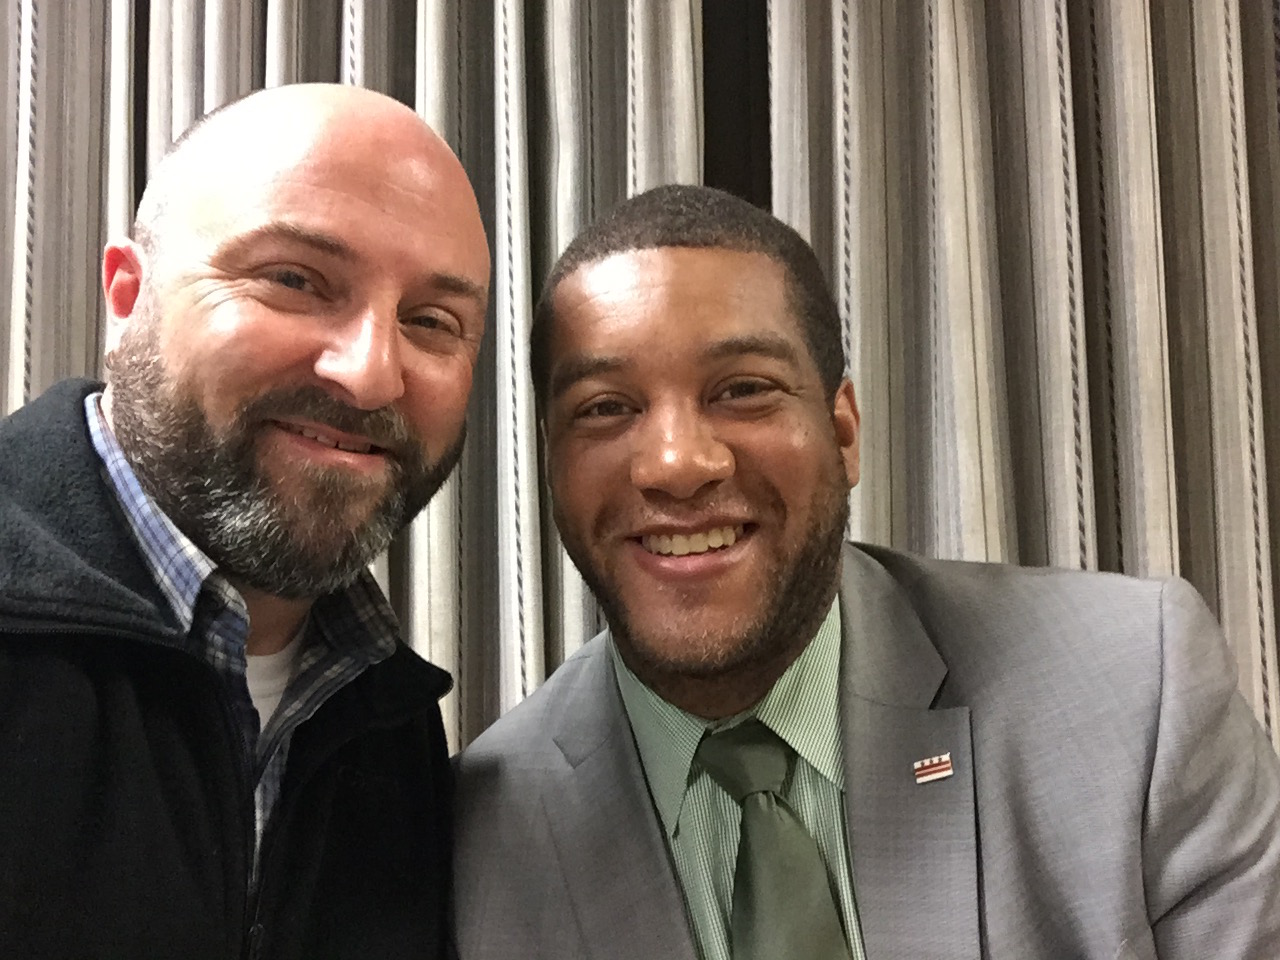 Ward 4 Liaison Khalil Thompson poses for a selfie with Drew.